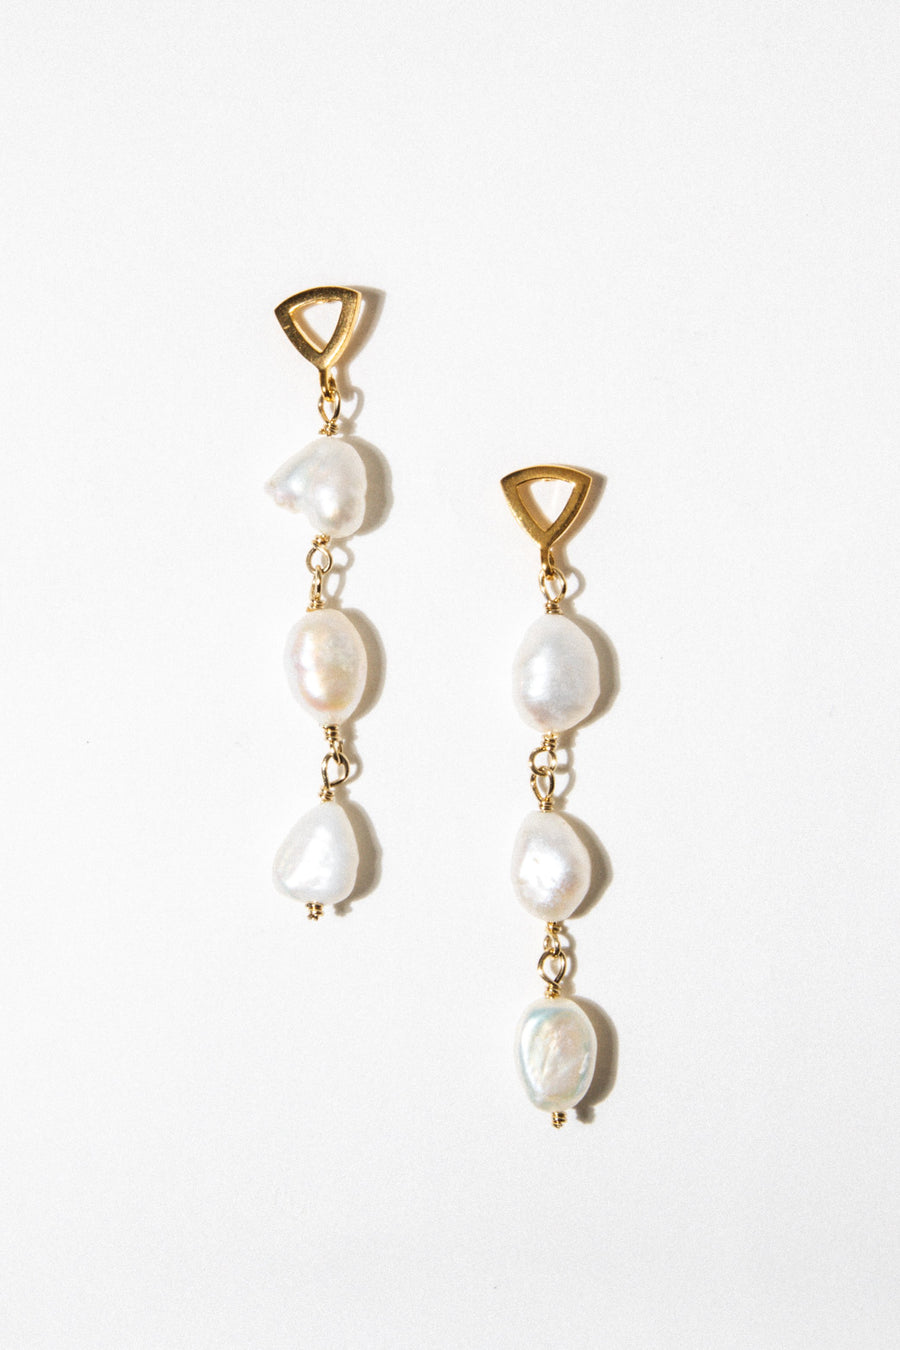 Beads Of Cambay Jewelry Gold Sun God Pearl Earrings